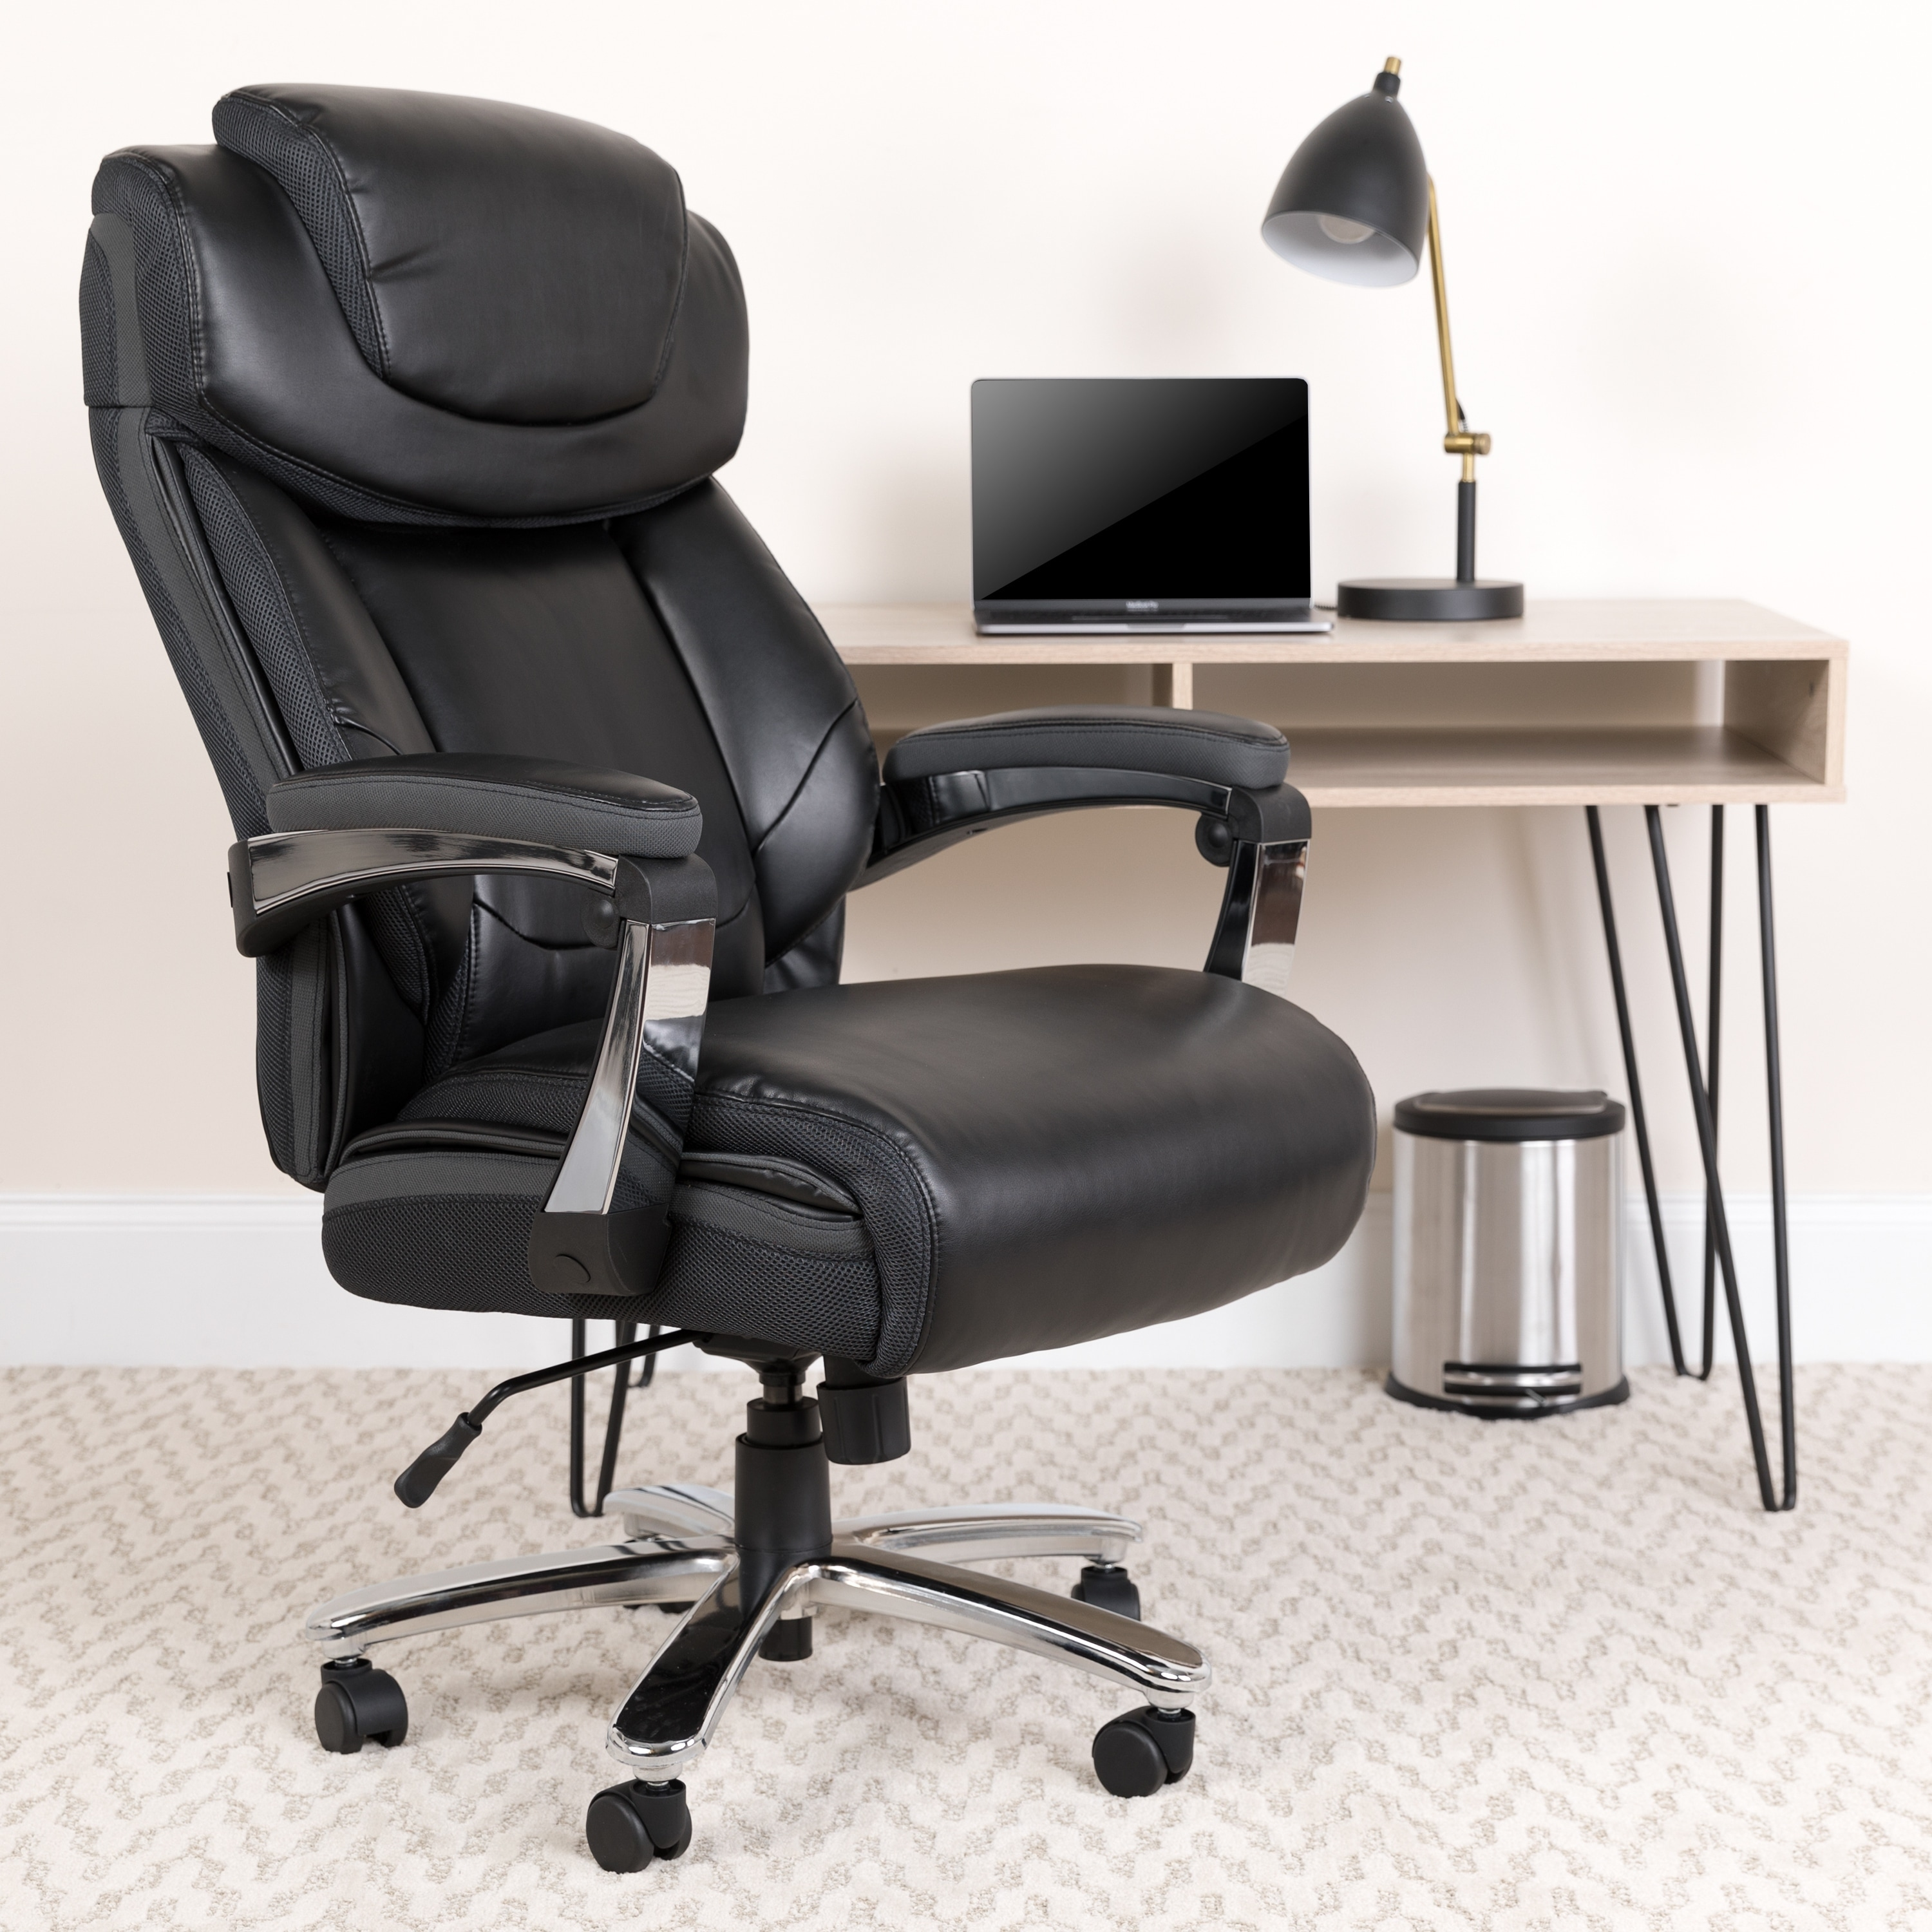 Business Industrial Chairs Stools 500 Lb Heavy Duty High Back Big And Tall Desk Executive Ergonomic Leather Chair Studio In Fine Fr